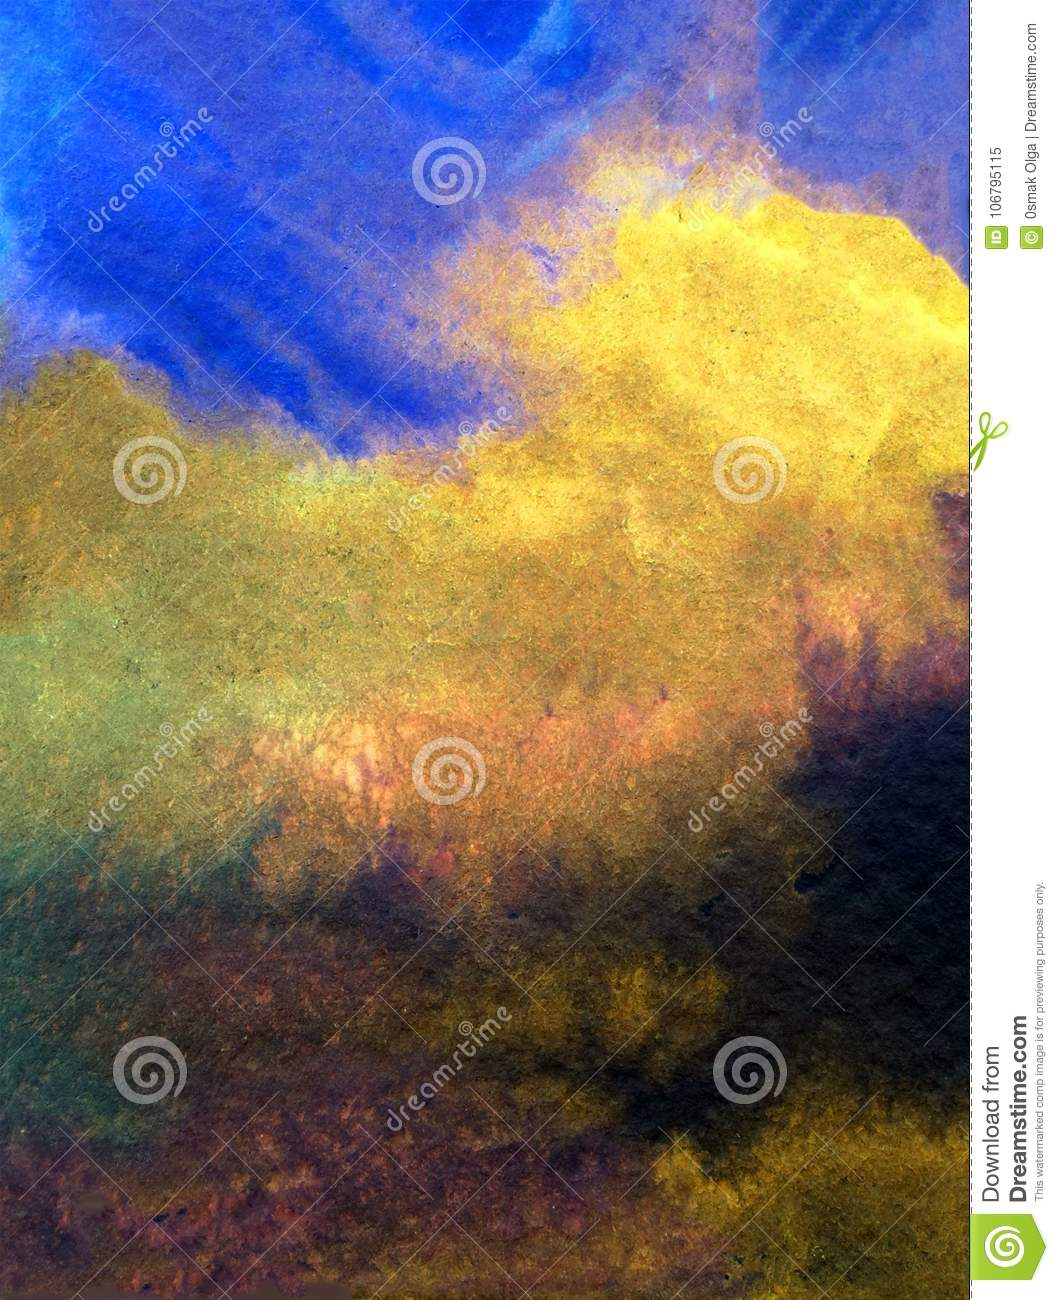 Watercolor art background abstract sky clouds storm colorful textured wet wash blurred overflow blots